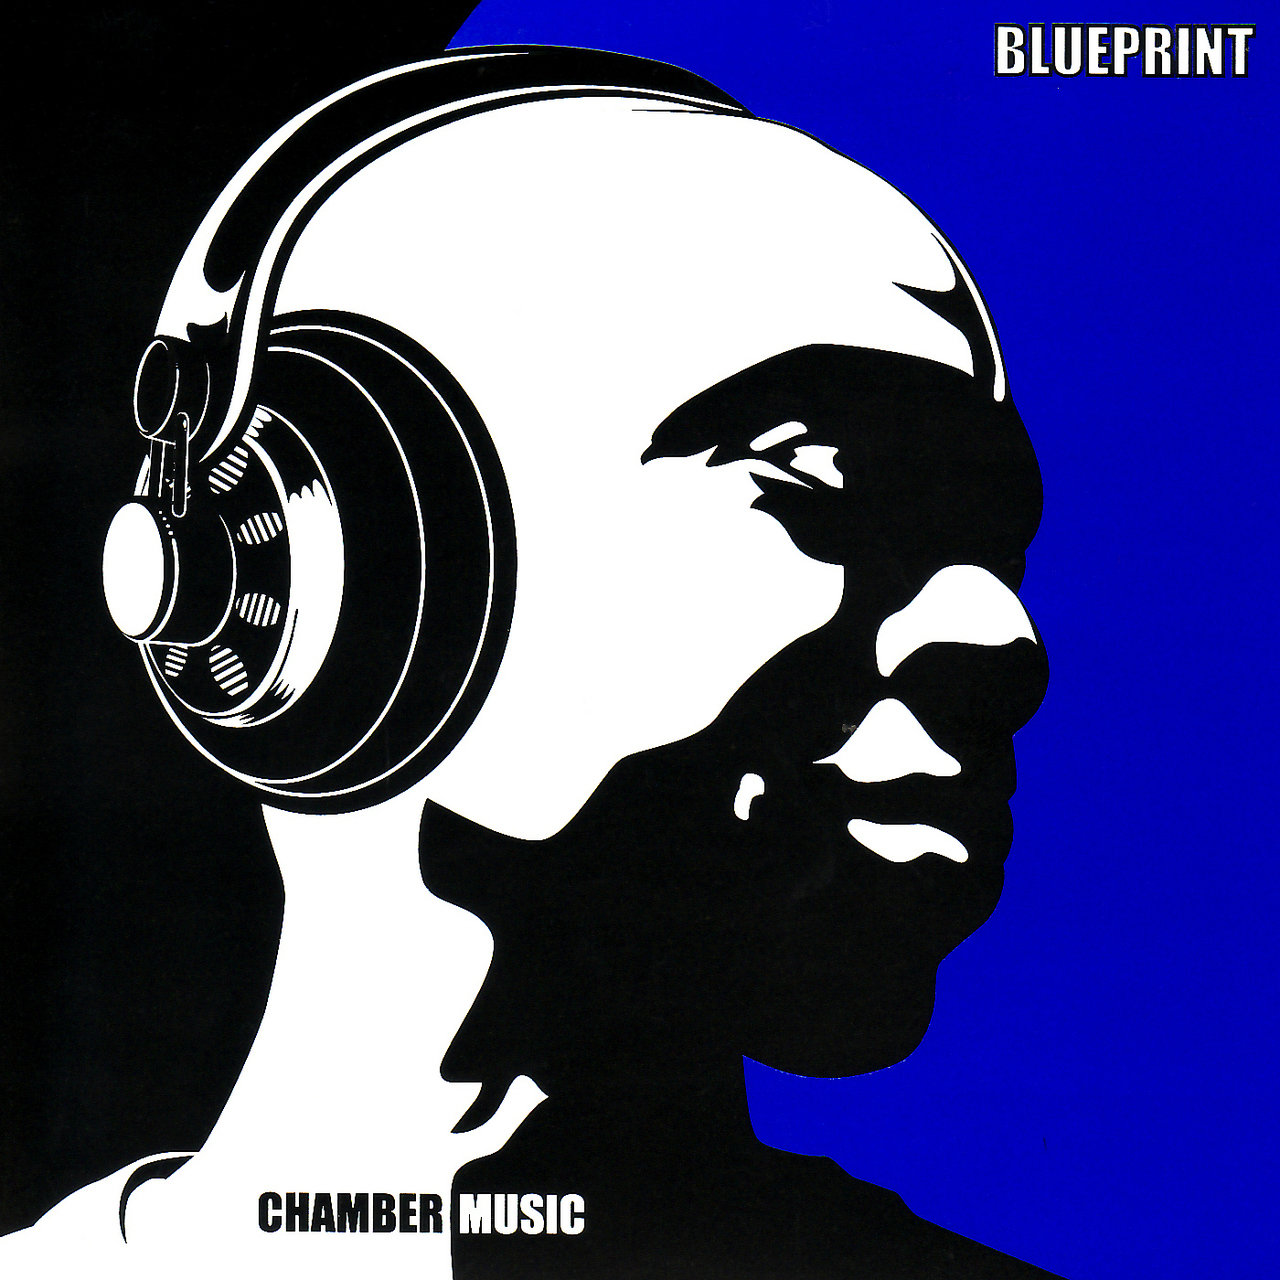 Download blueprint 3 deluxe edition tracklist adele jay z blueprint 3 deluxe edition zip malvernweather Image collections